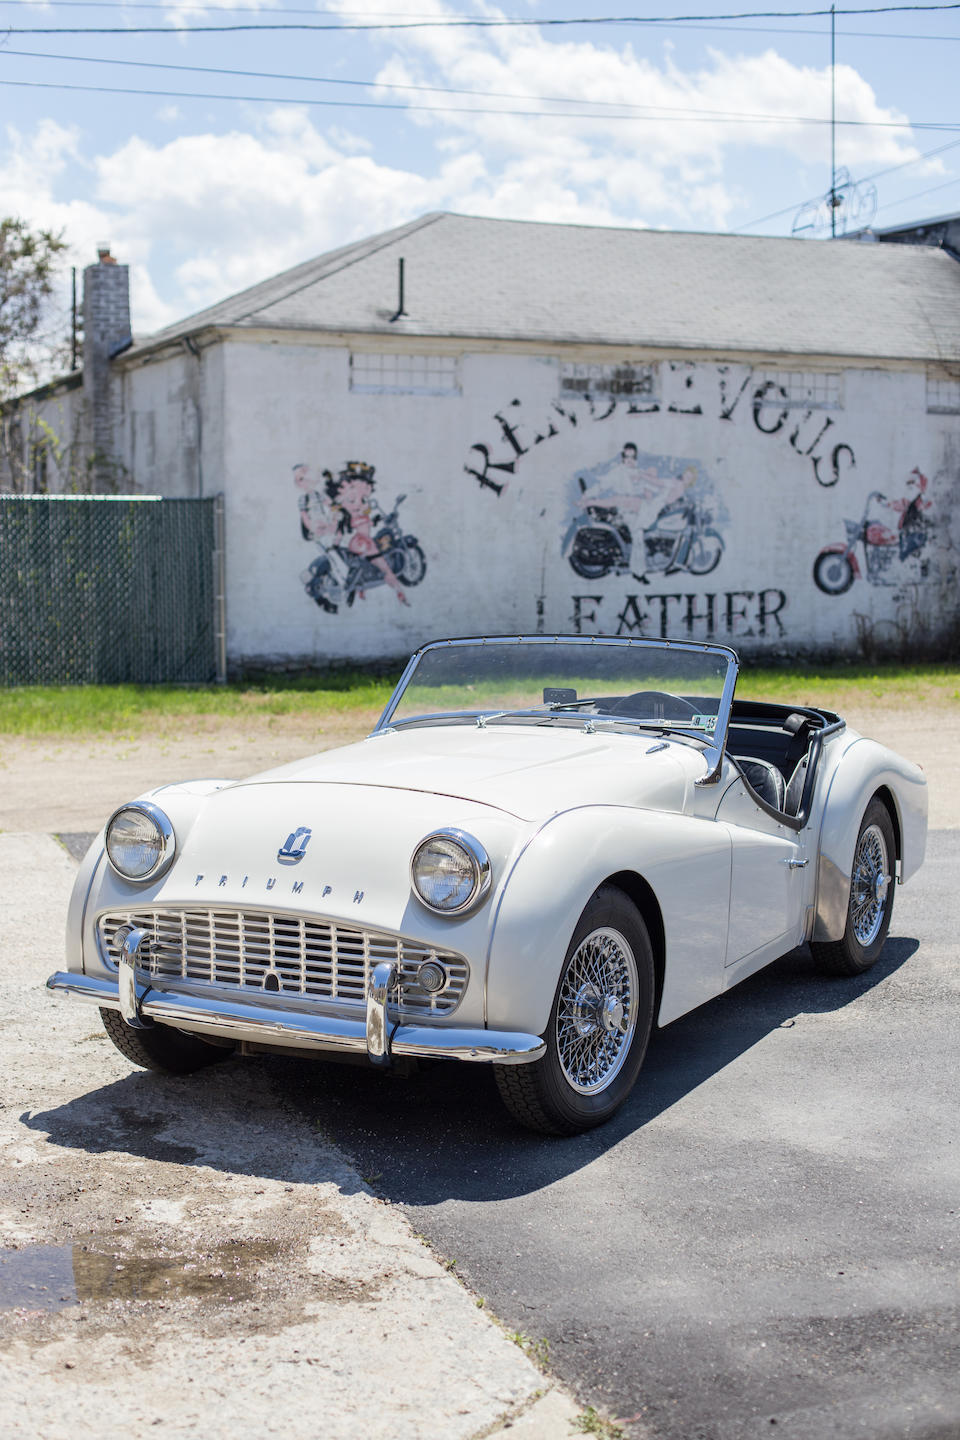 <B>1962 TRIUMPH TR3'B' ROADSTER</B><BR />Chassis no. TCF 862 L<BR />Engine no. TCF 883 L